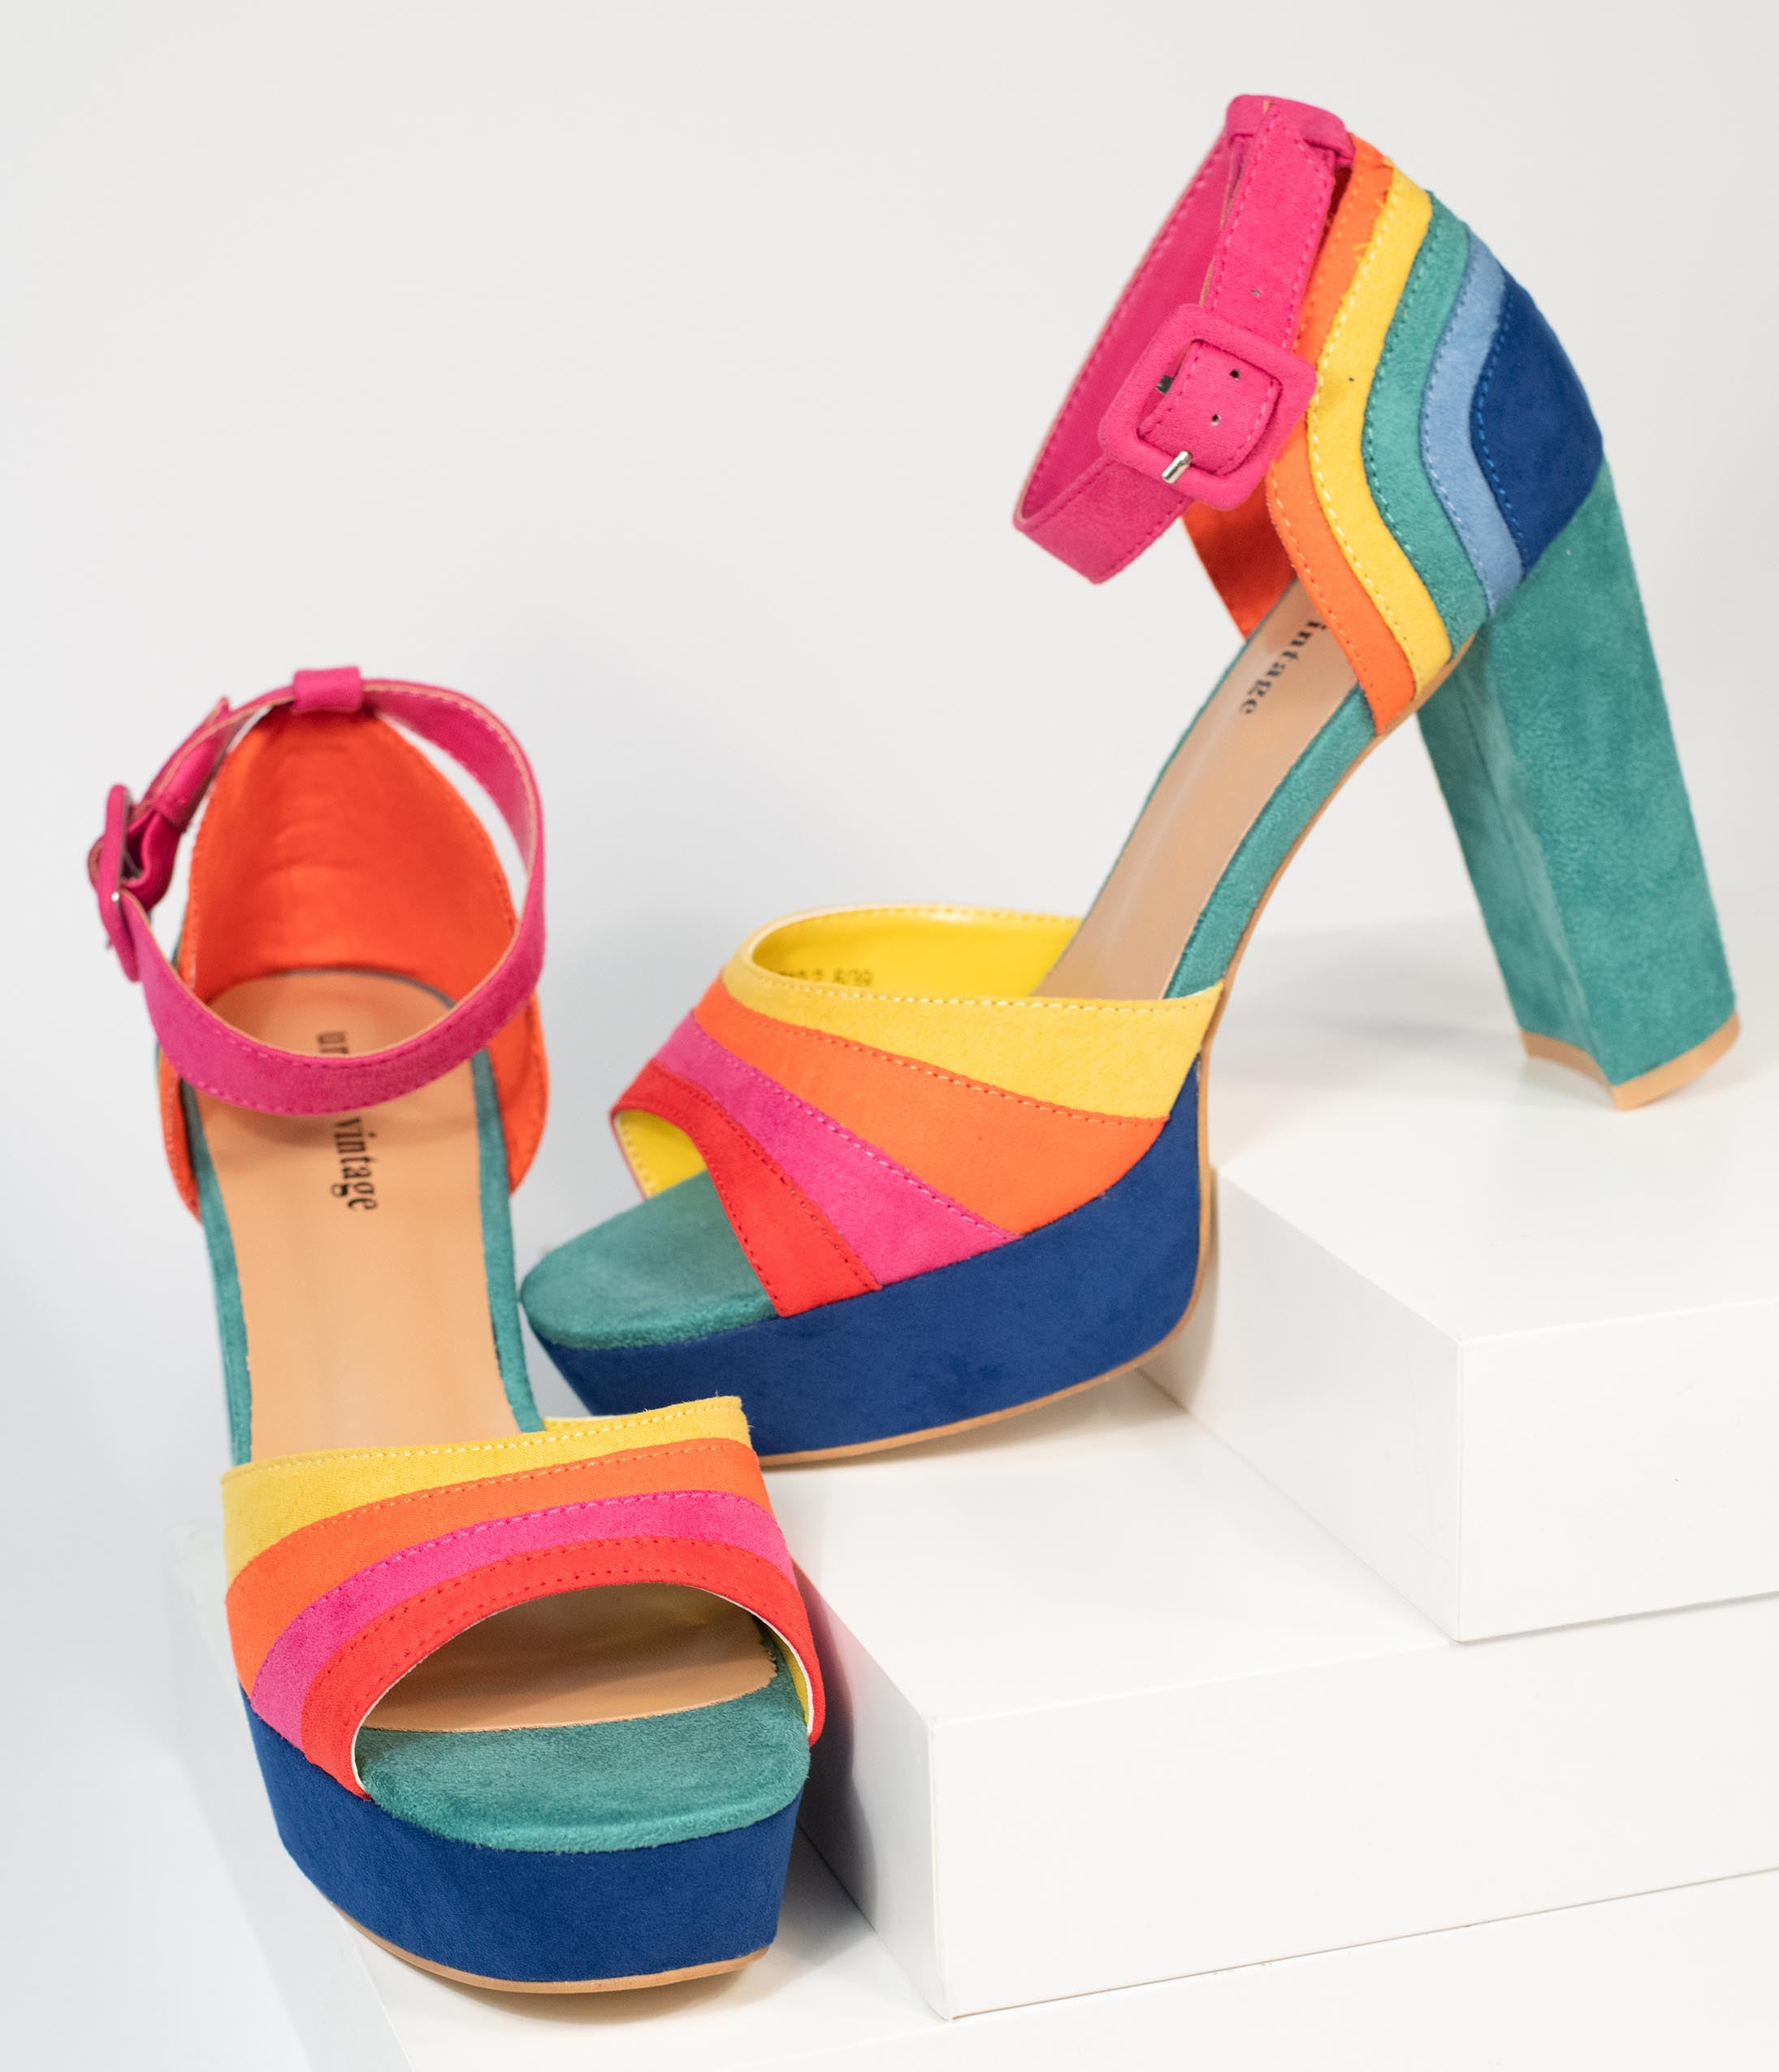 70s Shoes, Platforms, Boots, Heels | 1970s Shoes Unique Vintage Rainbow Suede Peep Toe Pumps $56.00 AT vintagedancer.com